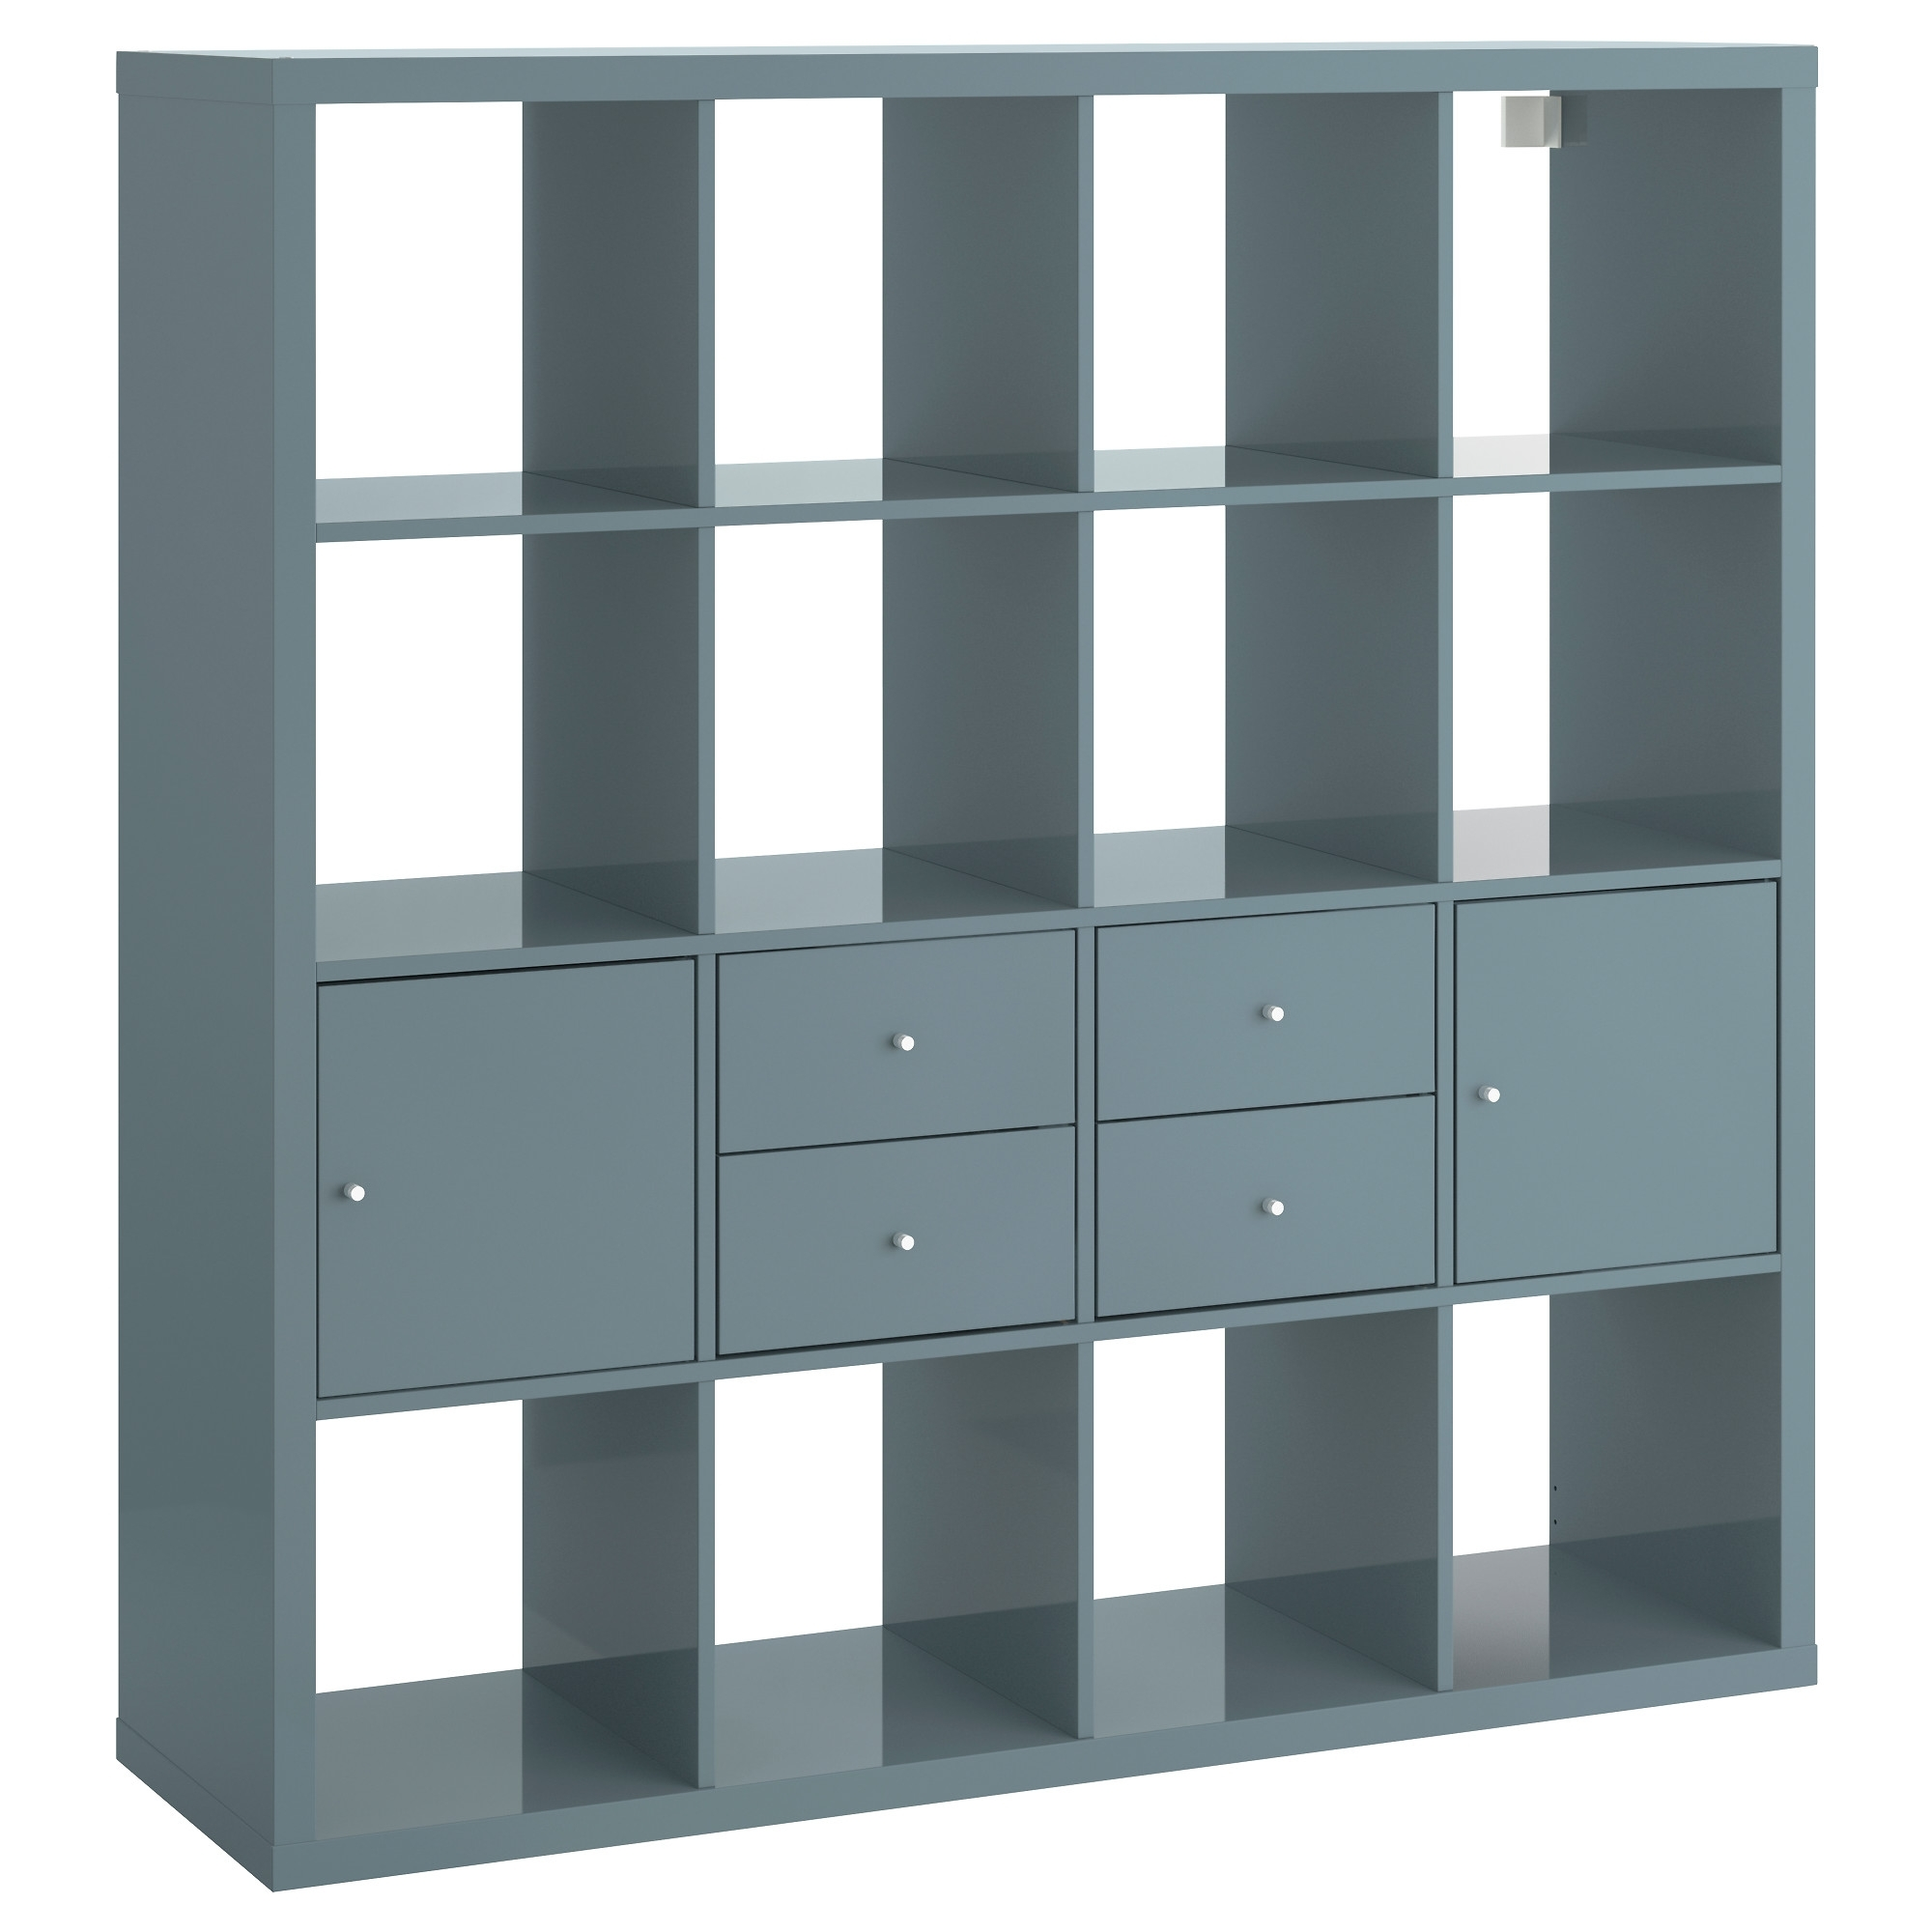 Most Up To Date Kallax Shelf Unit With 4 Inserts – Ikea With Regard To Ikea Kallax Bookcases (View 9 of 15)